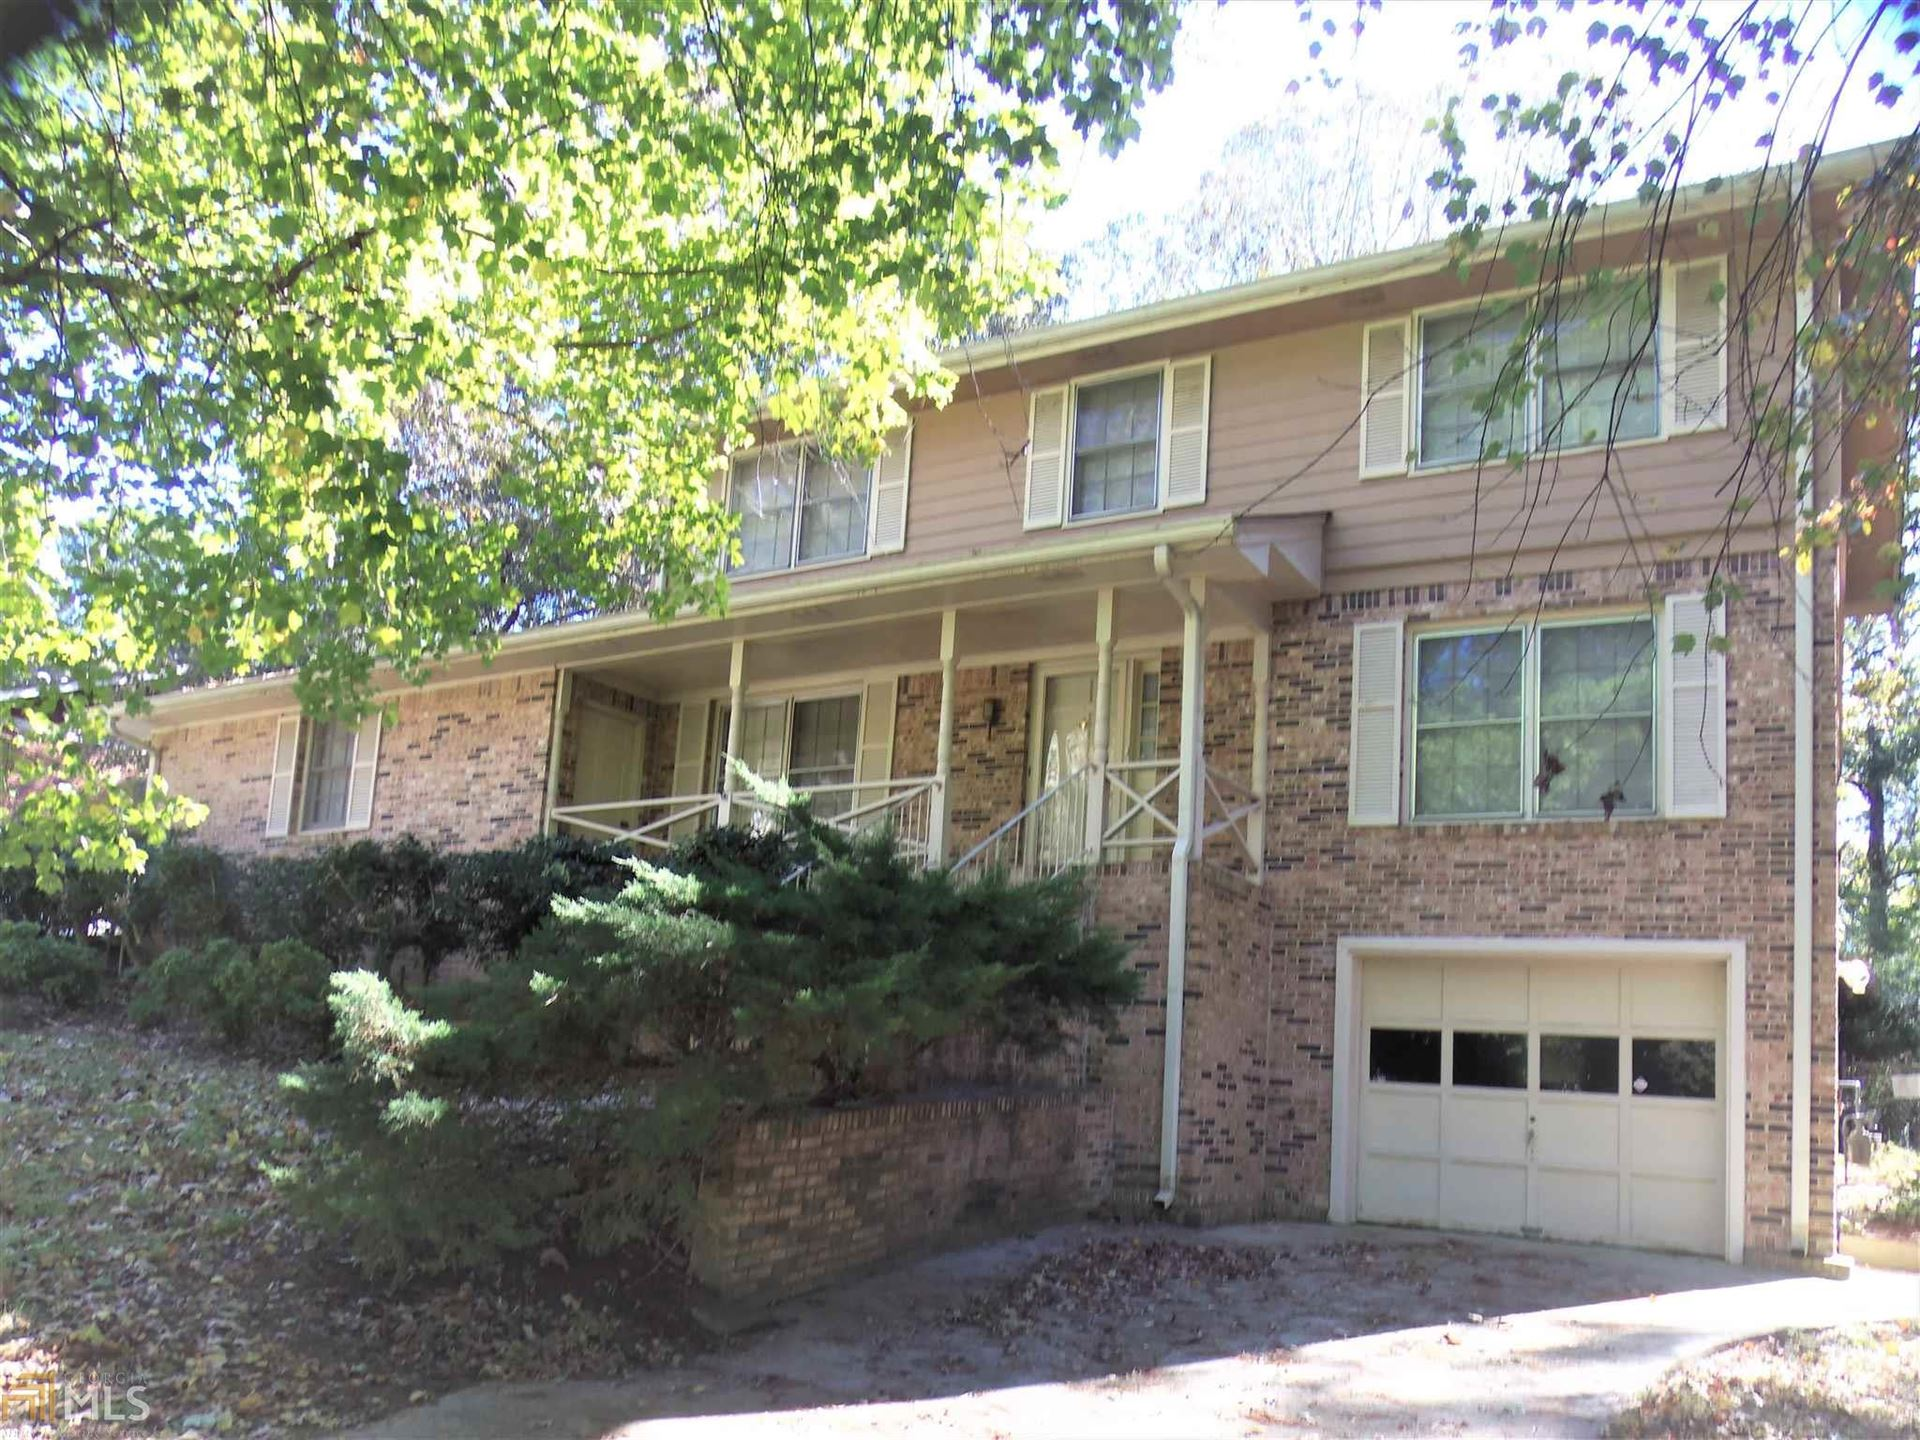 5282 N Pounds Dr, Stone Mountain, GA 30087 - #: 8881311